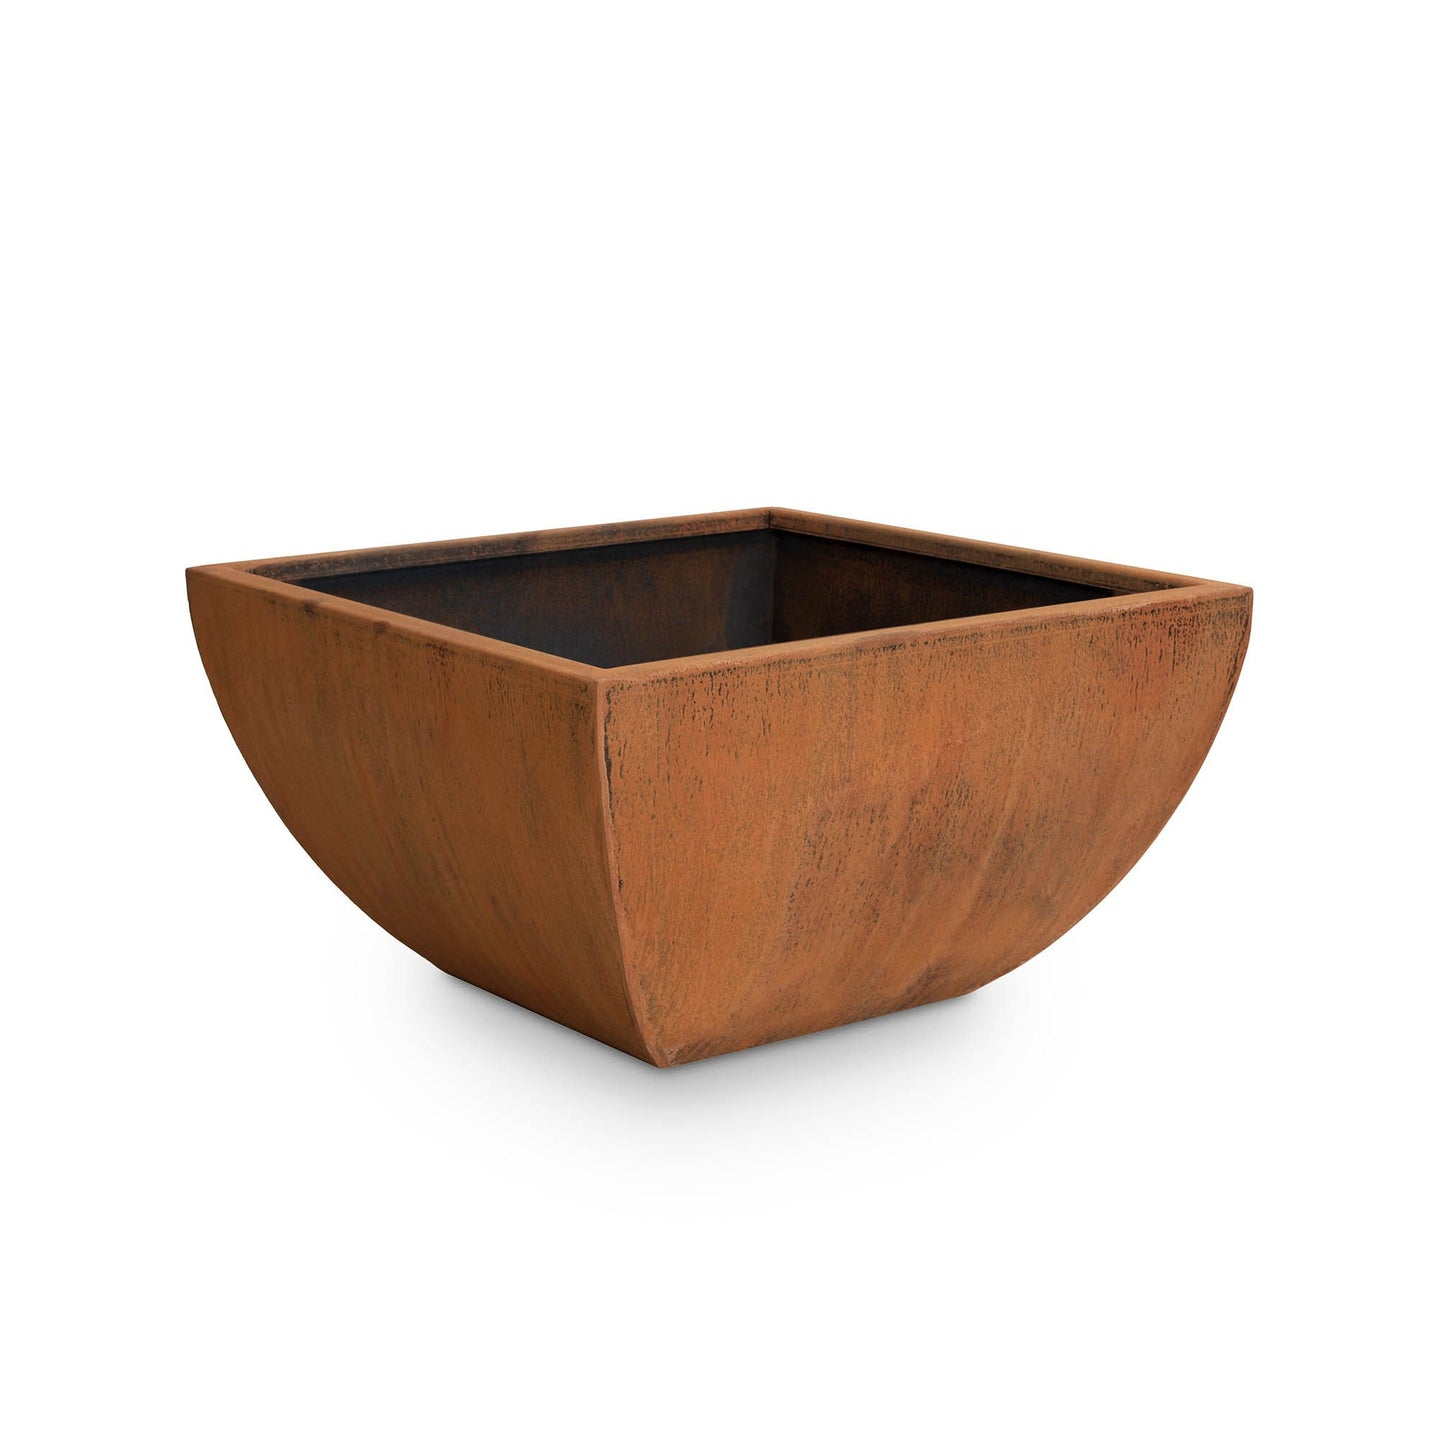 Tuscon Square Corten Steel Planter